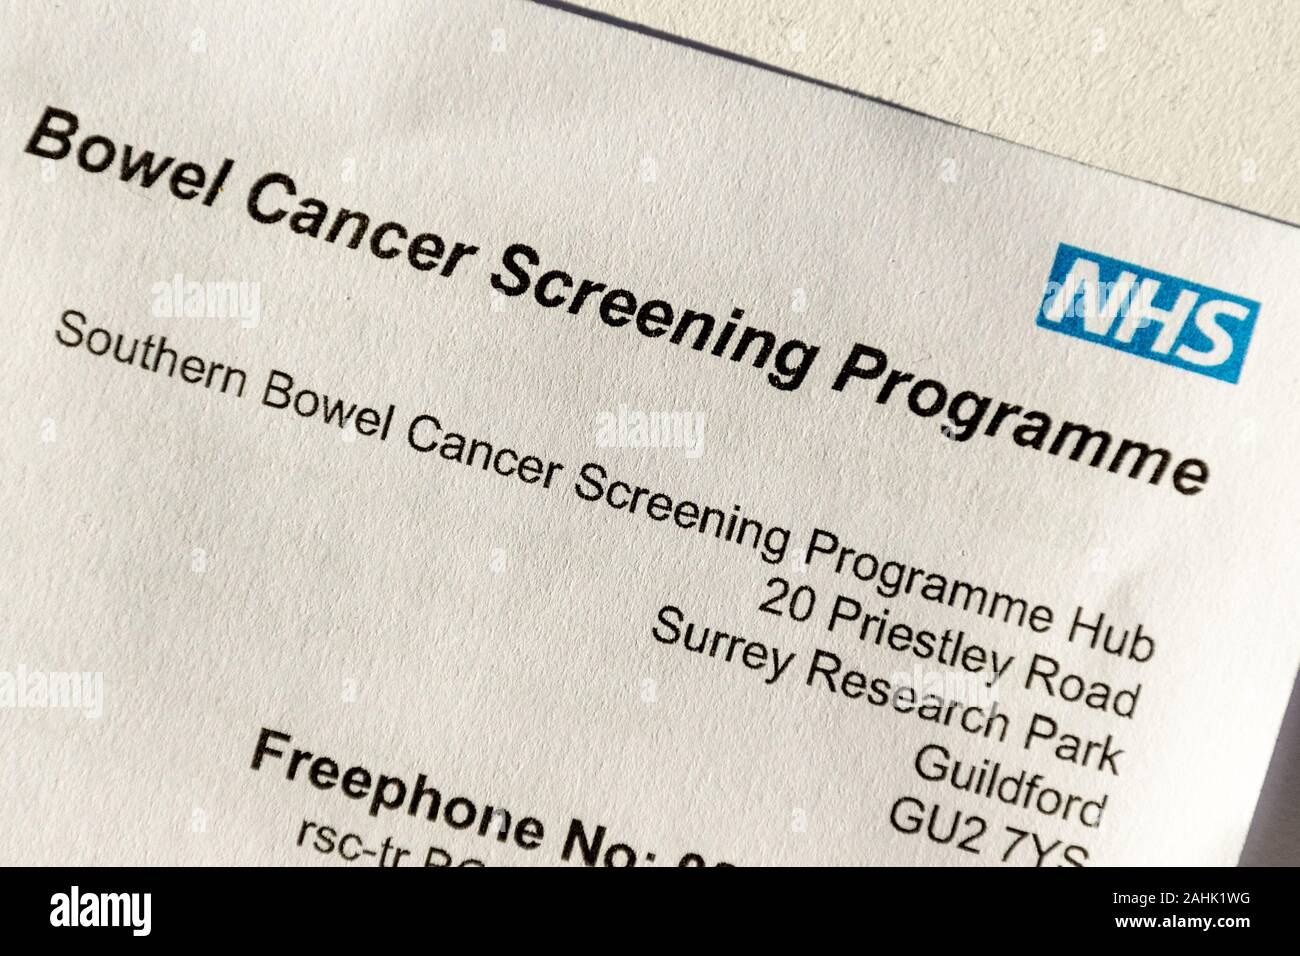 Nhs Bowel Cancer Screening Programme Invitation Letter Stock Photo Alamy